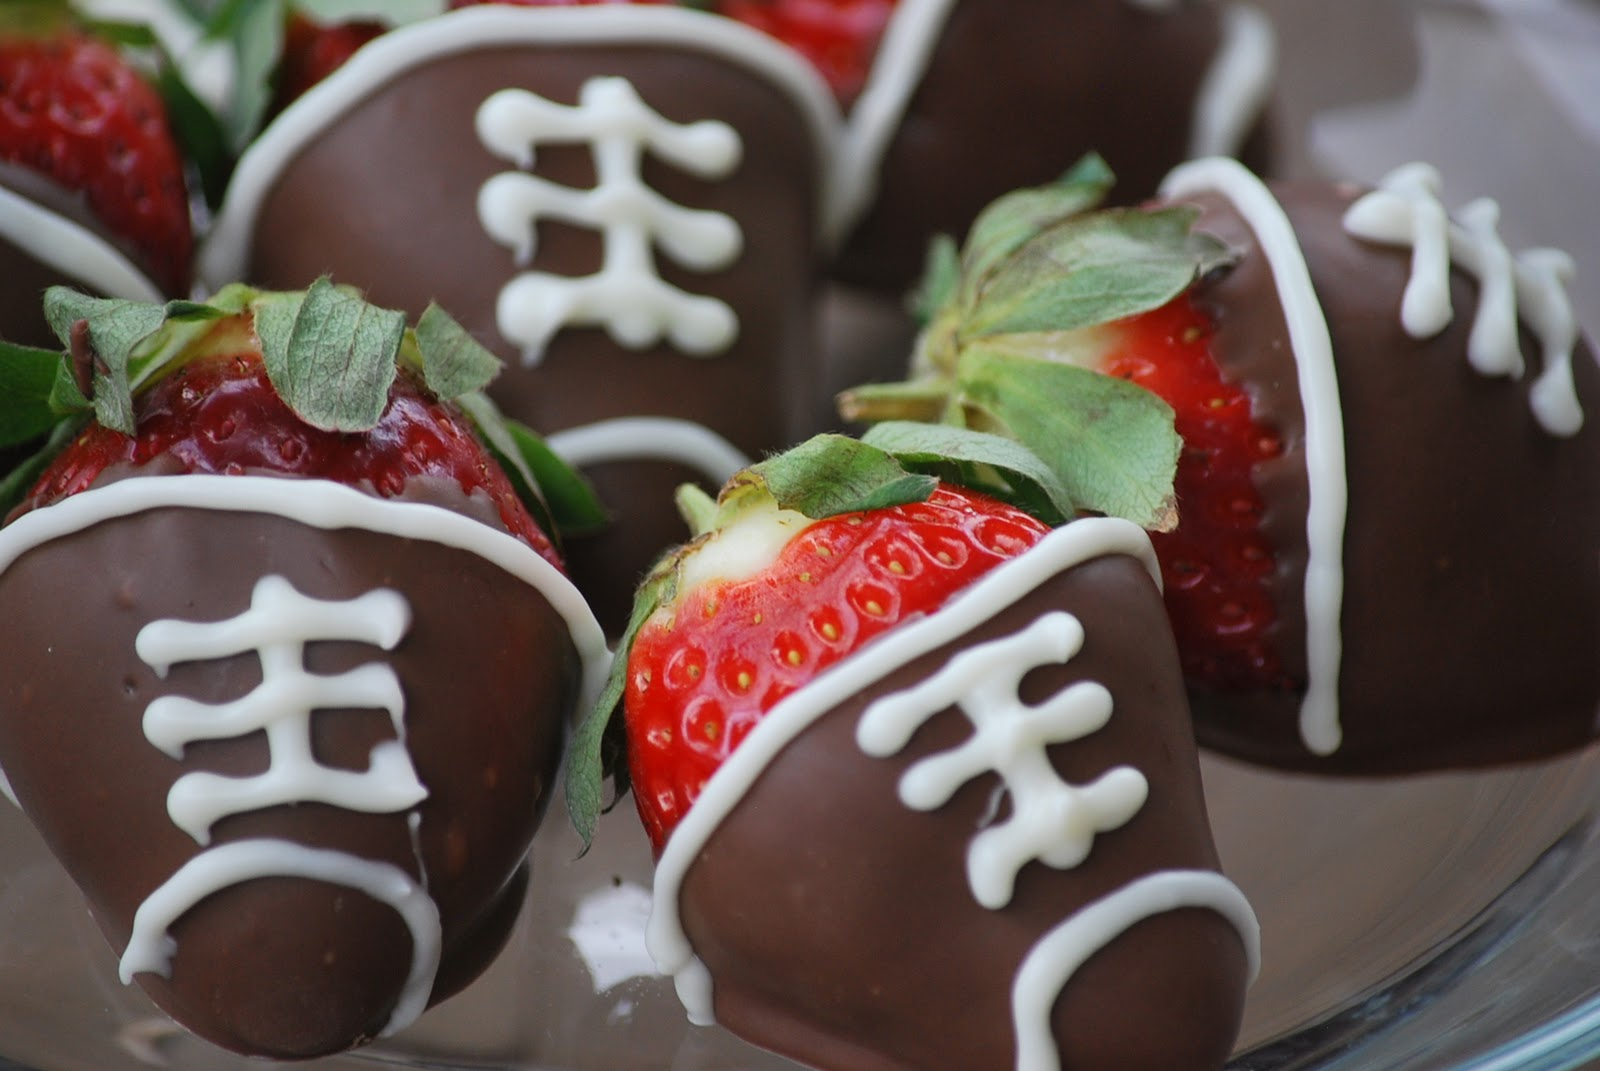 Try some of these other Superbowl snack ideas.